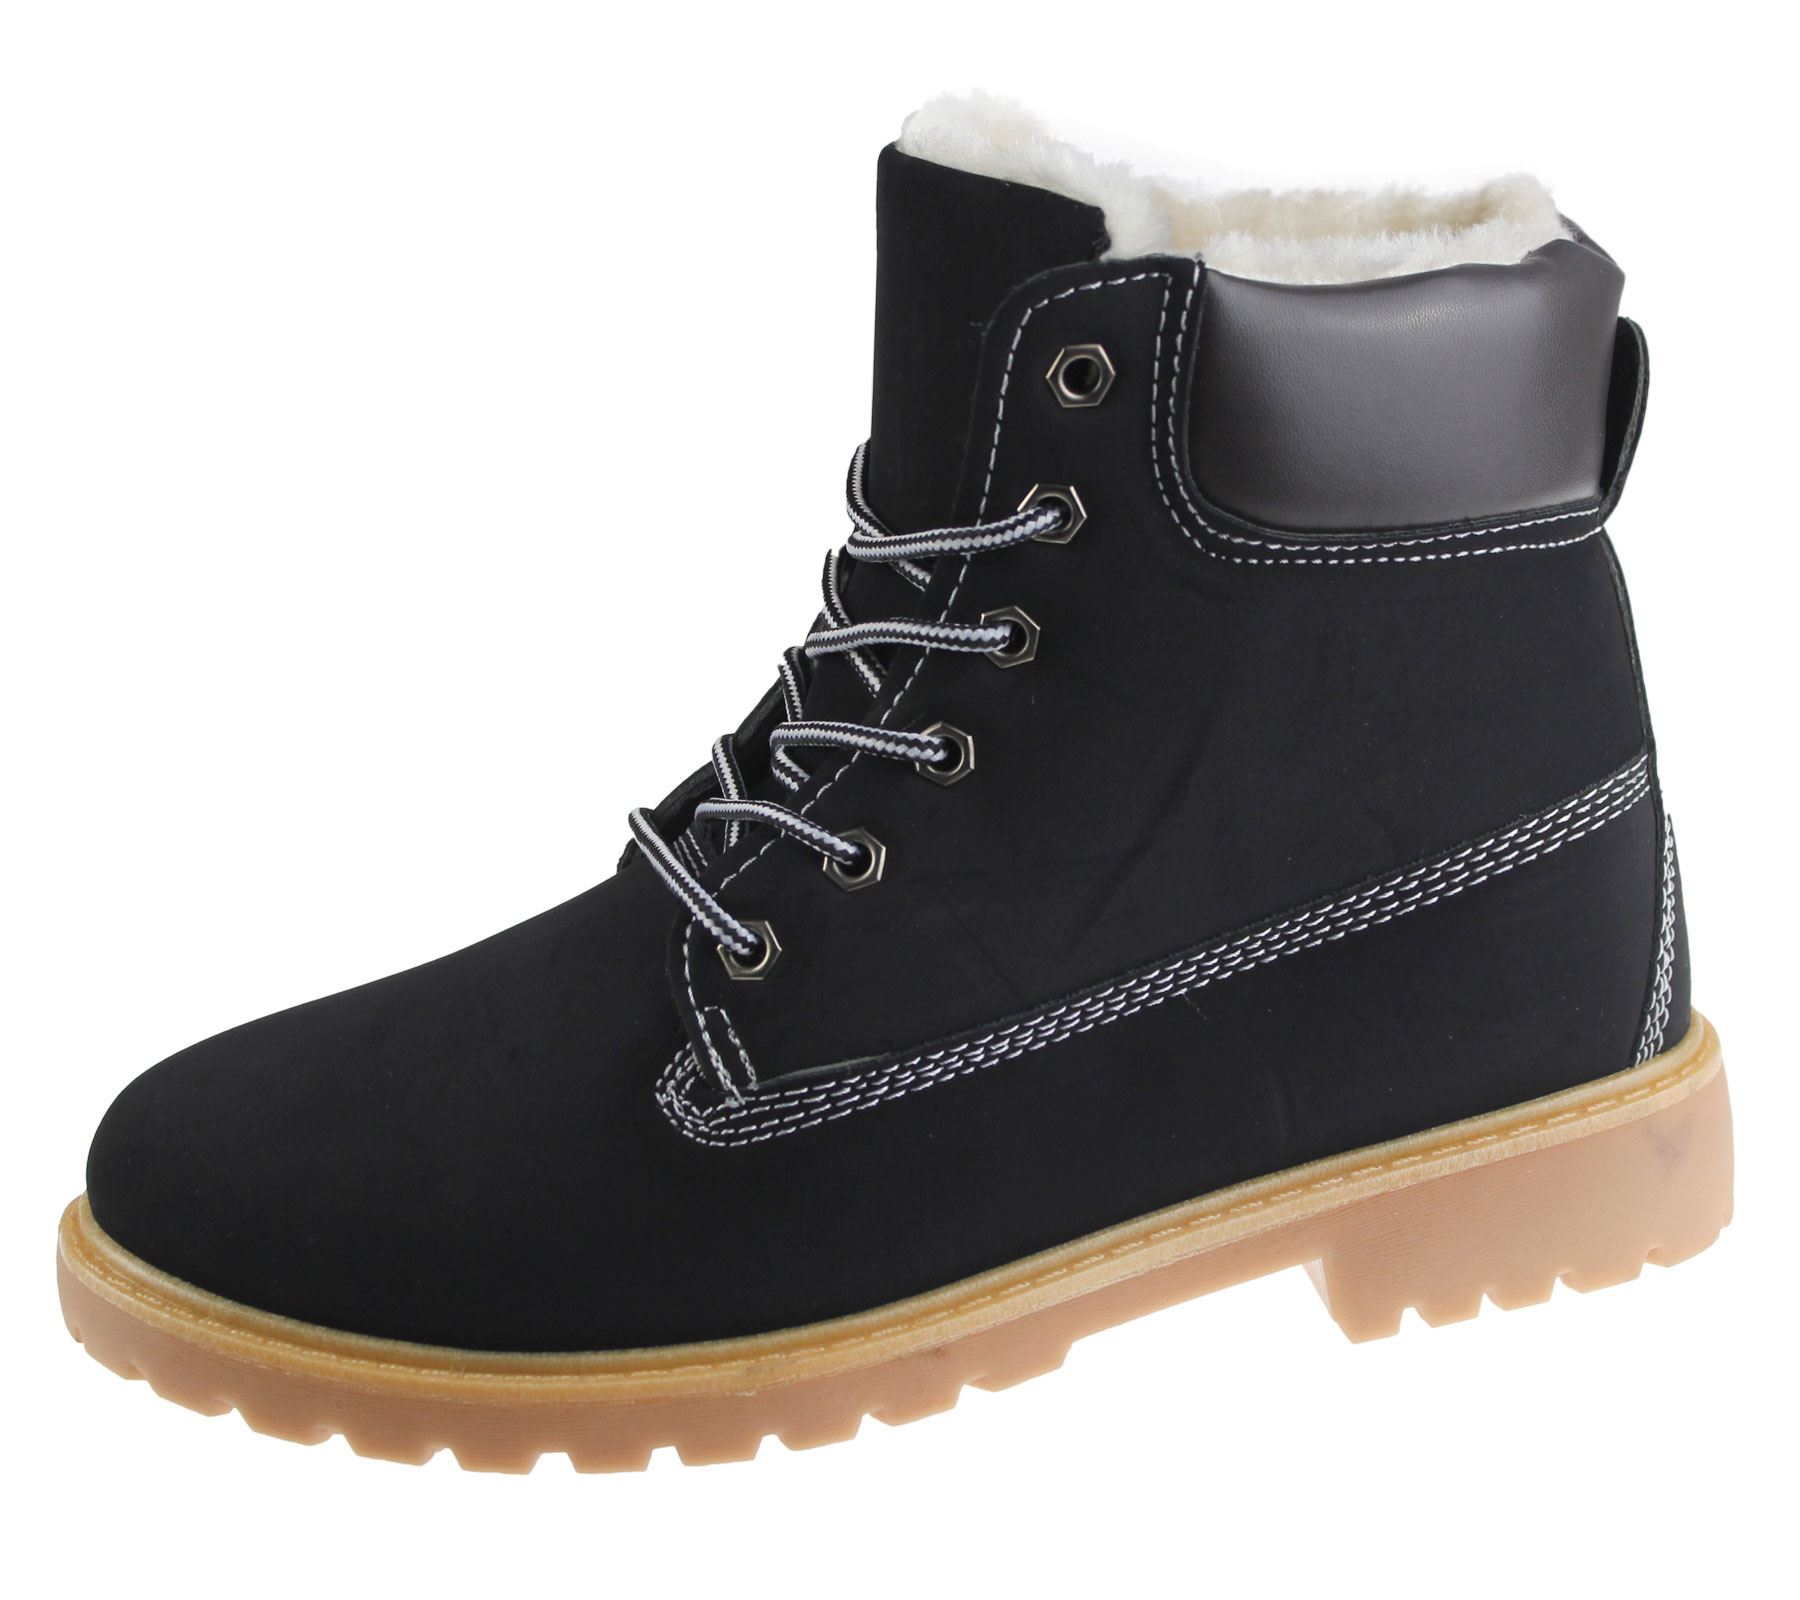 Womens Fur Lined Boots Winter Warm Combat Hiking Work High Top Ankle Shoes Size | EBay